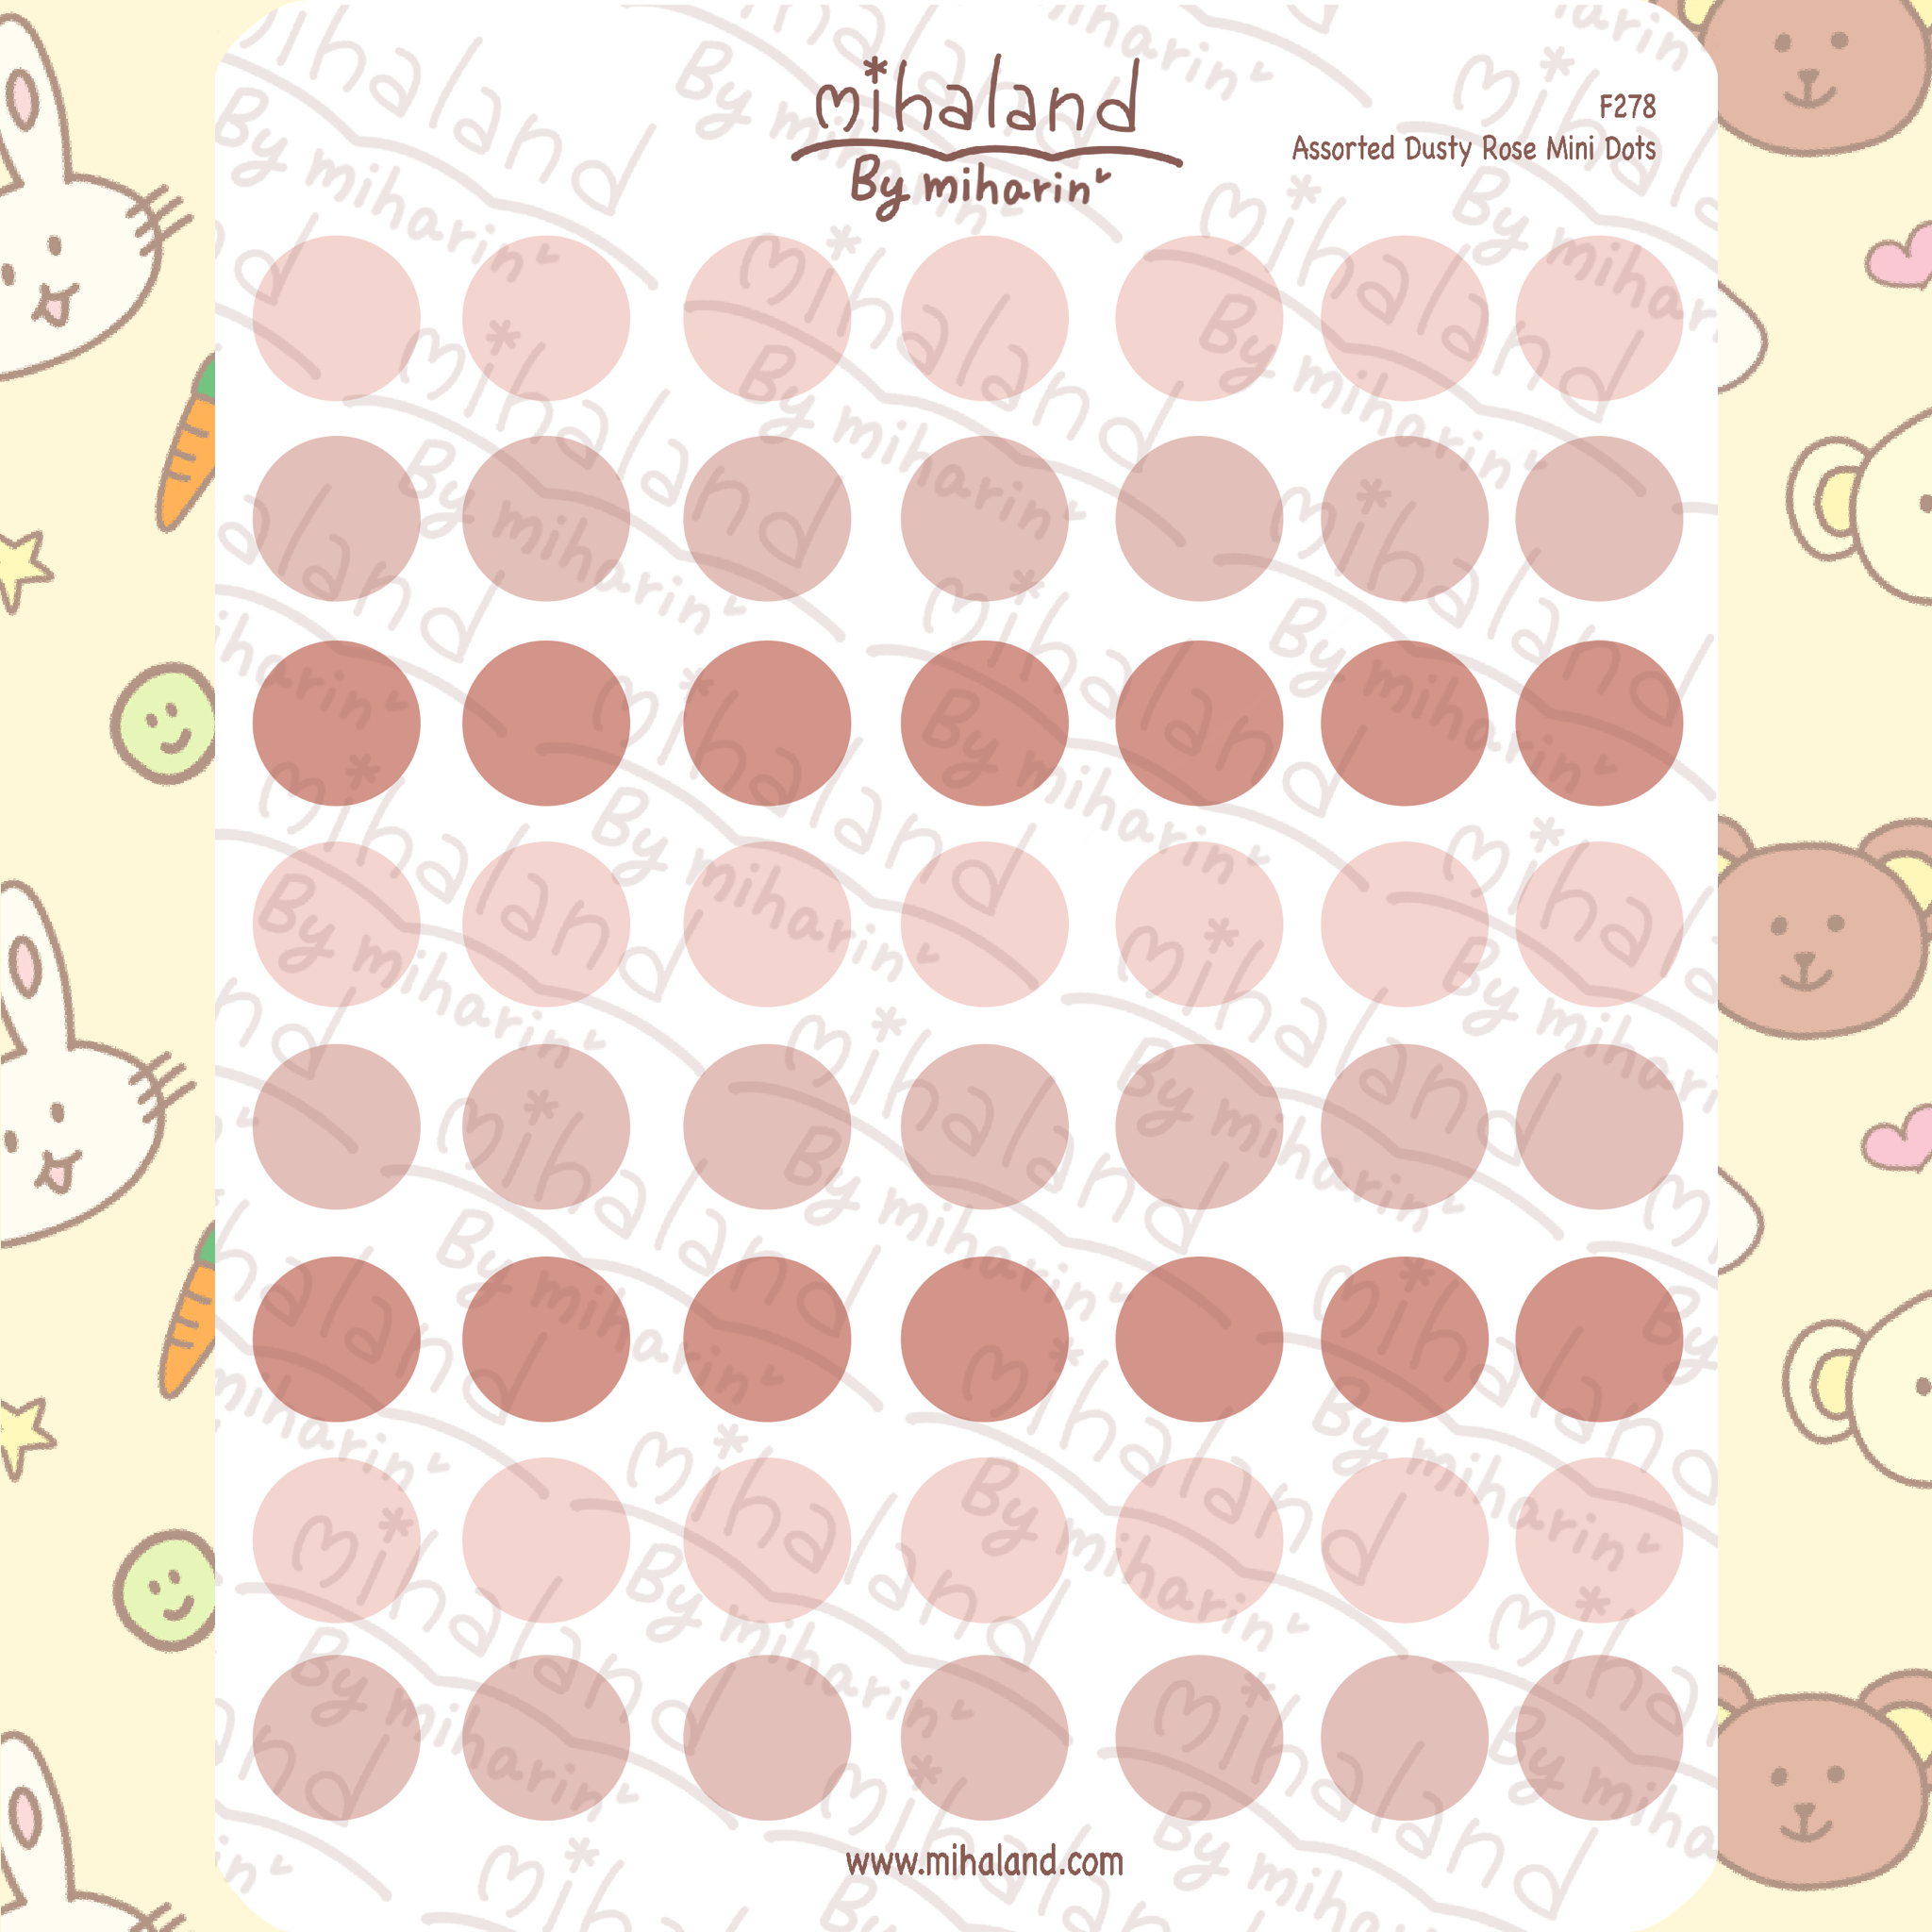 Assorted Dusty Rose Mini Dots Planner Stickers (F278)